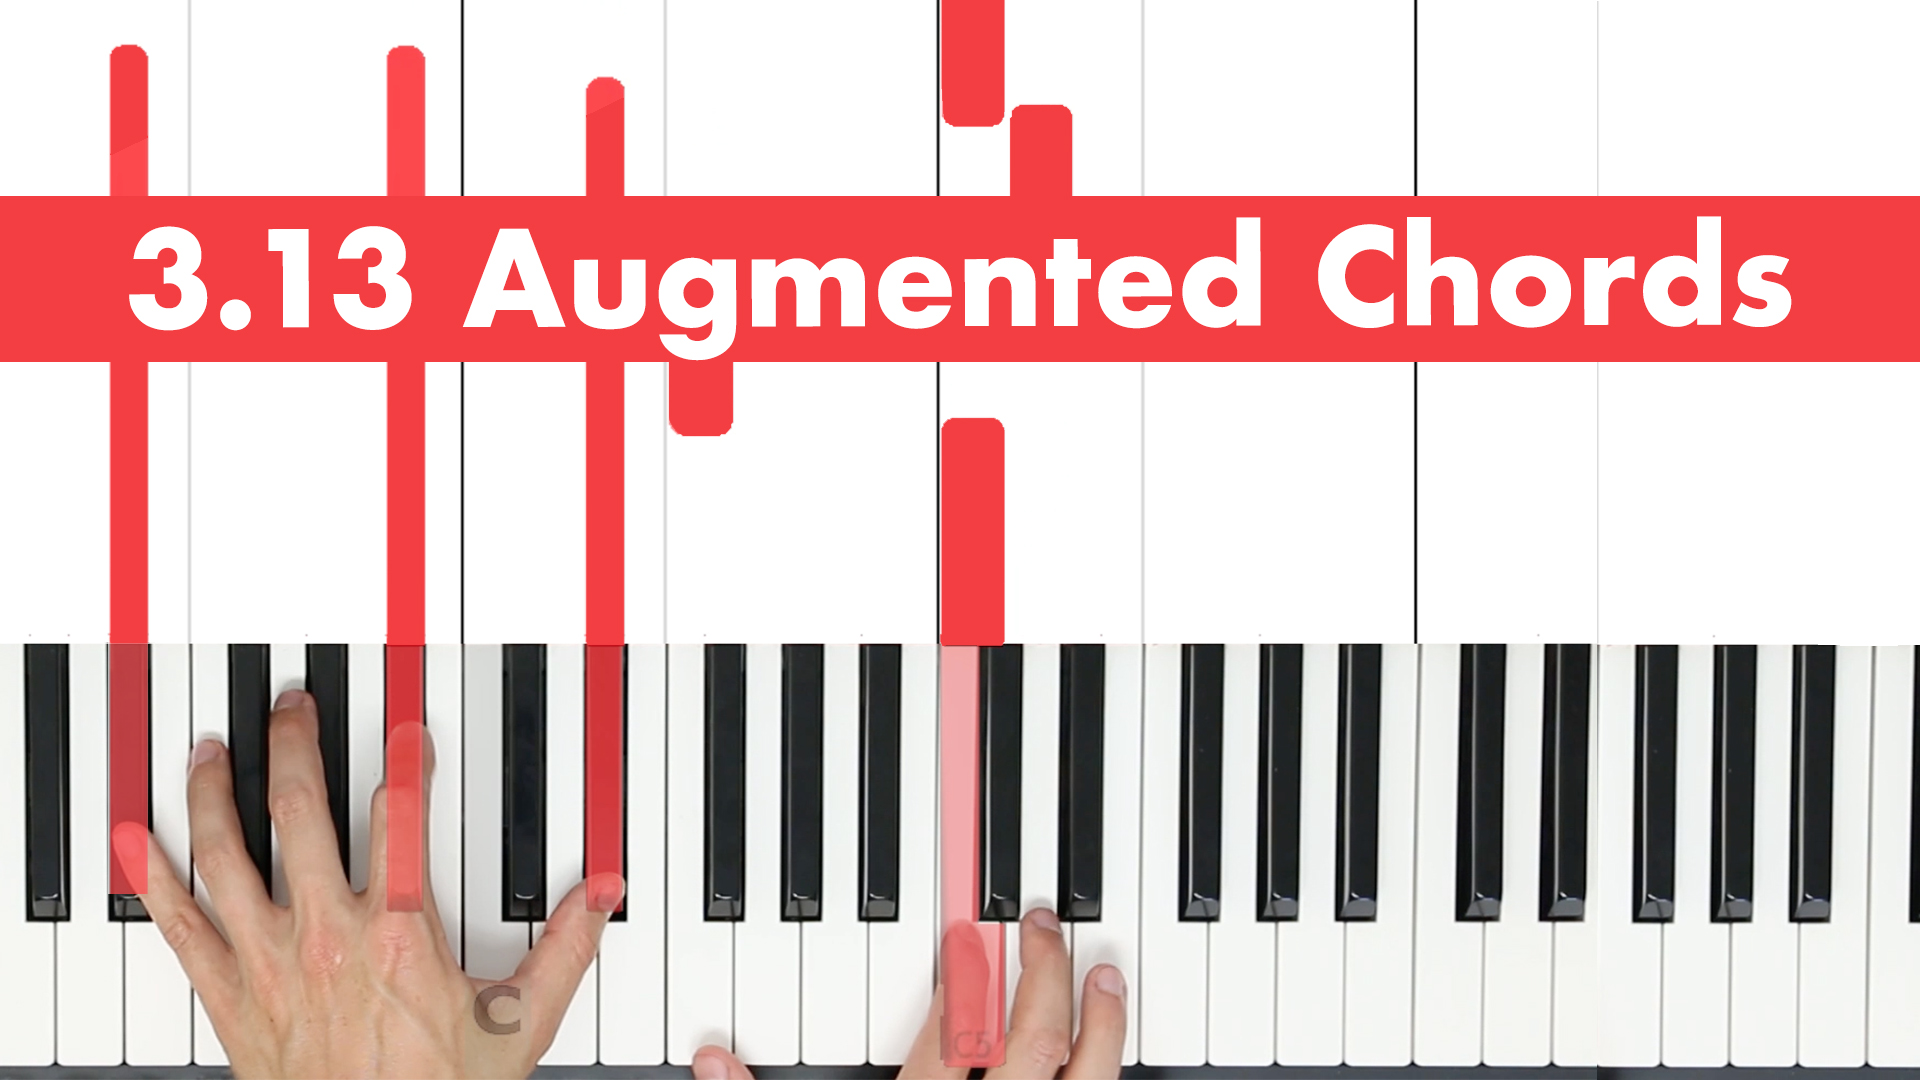 3.13 Augmented Chords